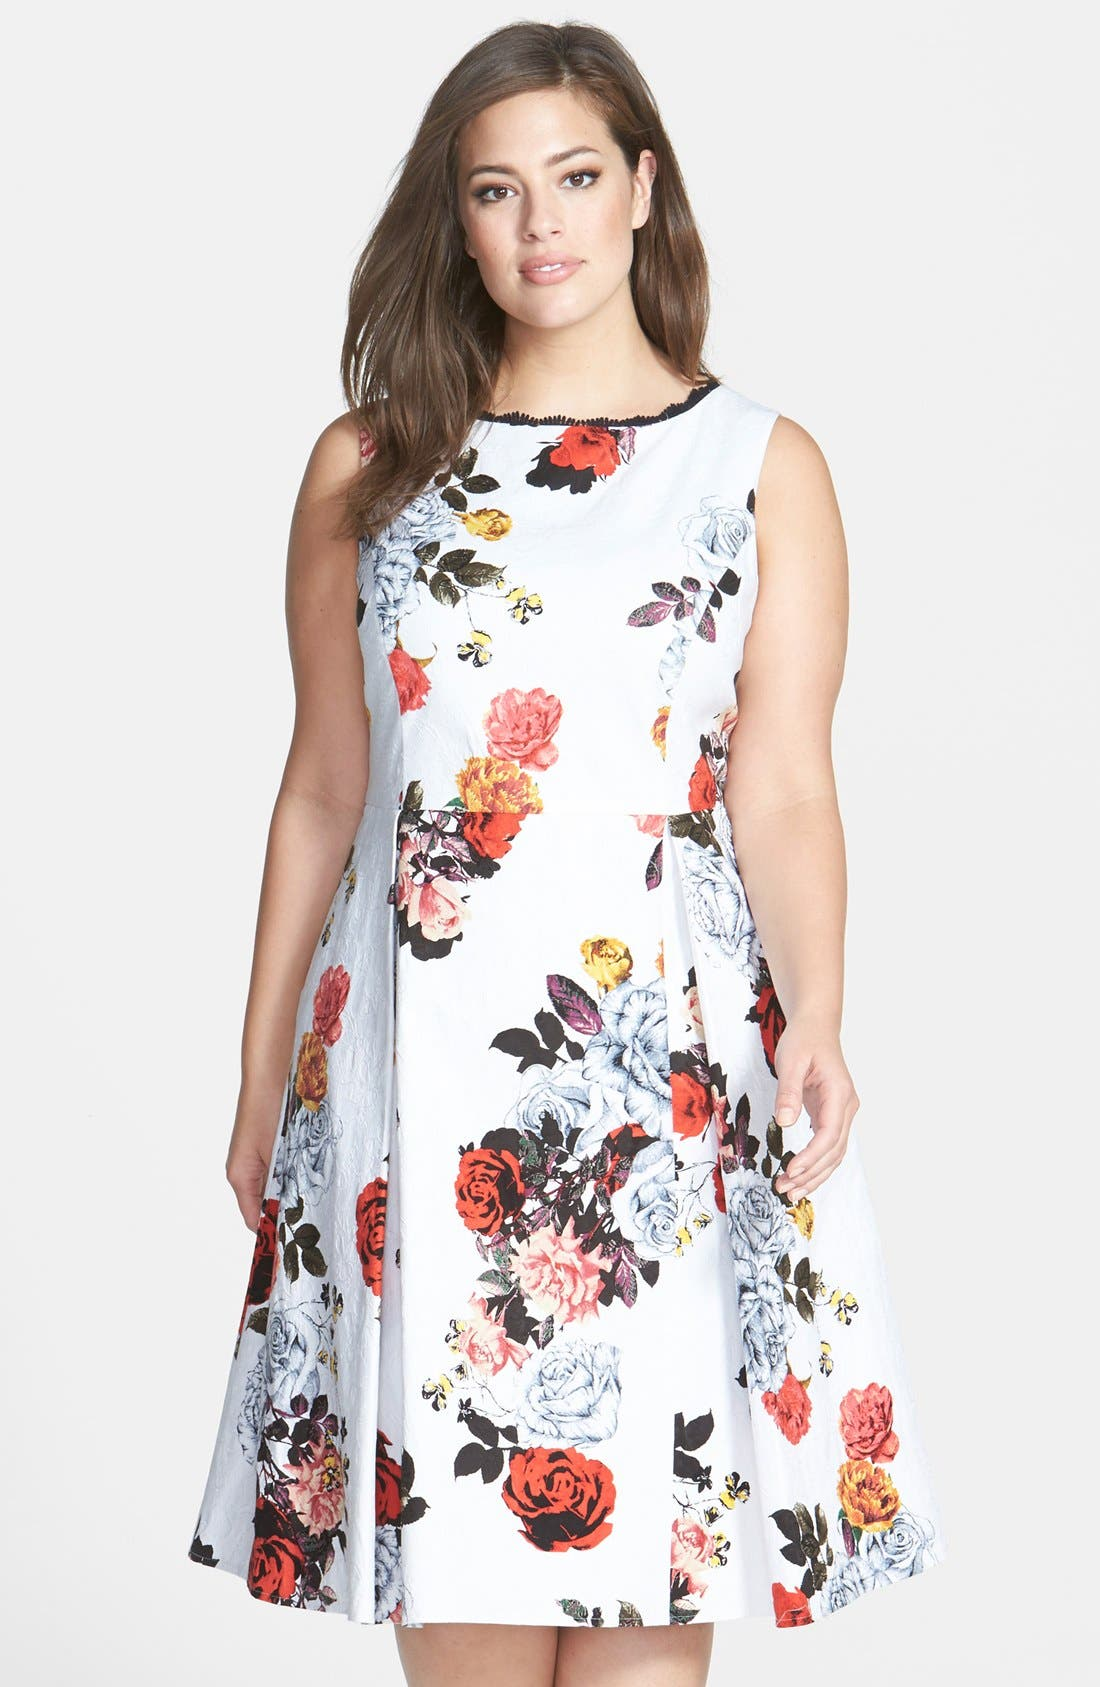 Alternate Image 1 Selected - Adrianna Papell Rose Print Jacquard Fit & Flare Dress (Plus Size)